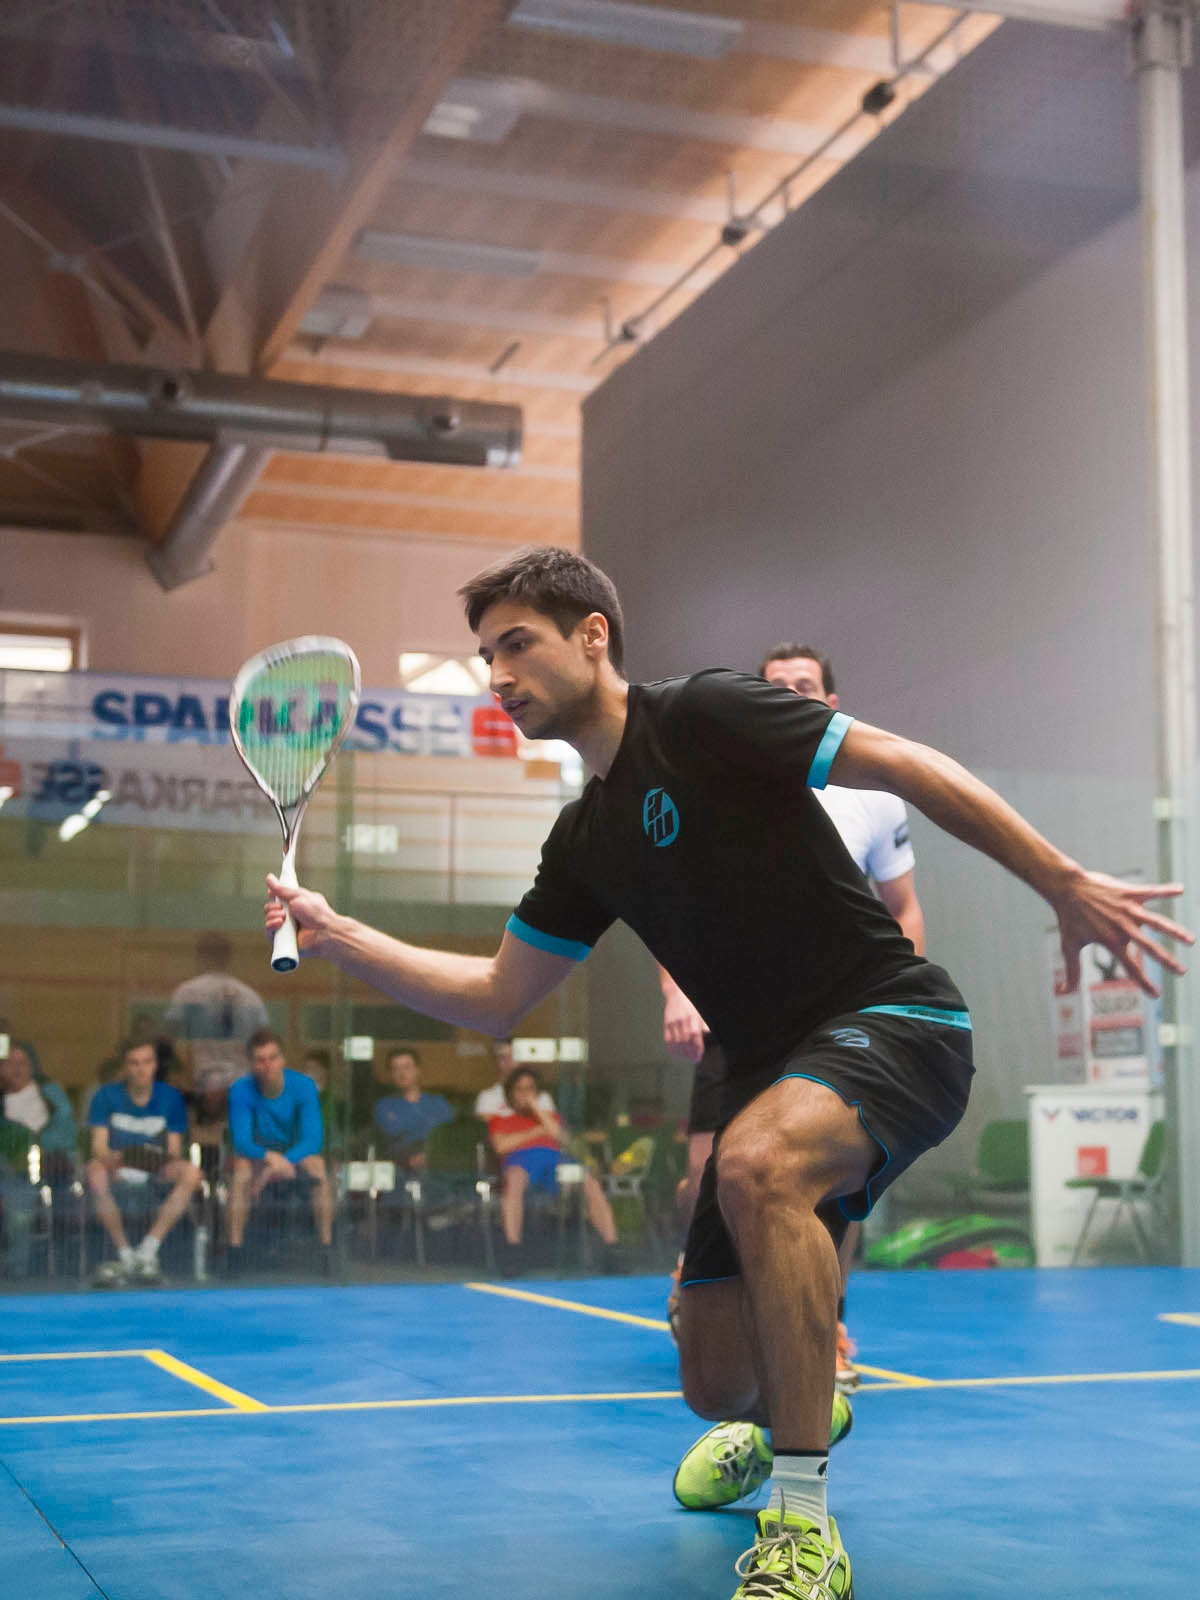 Squash Coaching Blog: Alternative to Boast & Drive